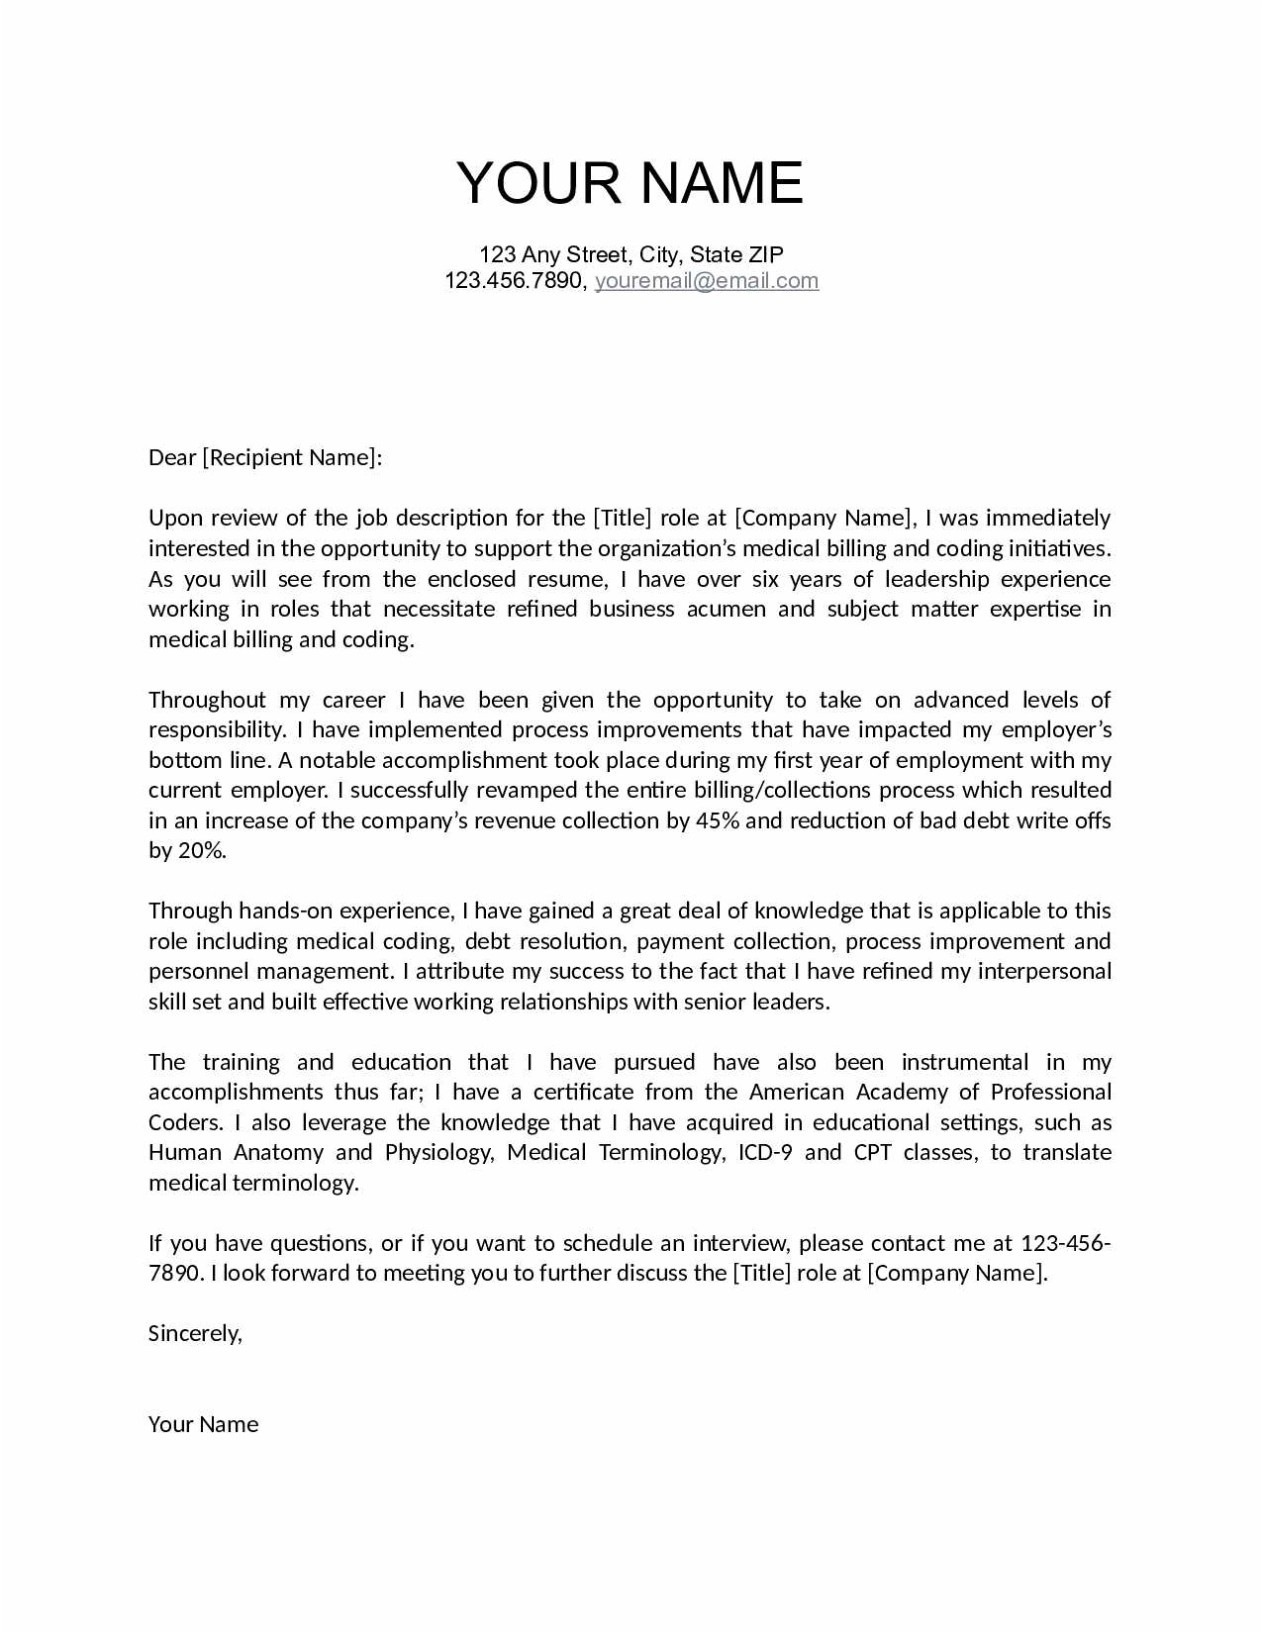 House Offer Letter Template - How to Write A Job Fer Letter Inspirationa Job Fer Letter Template